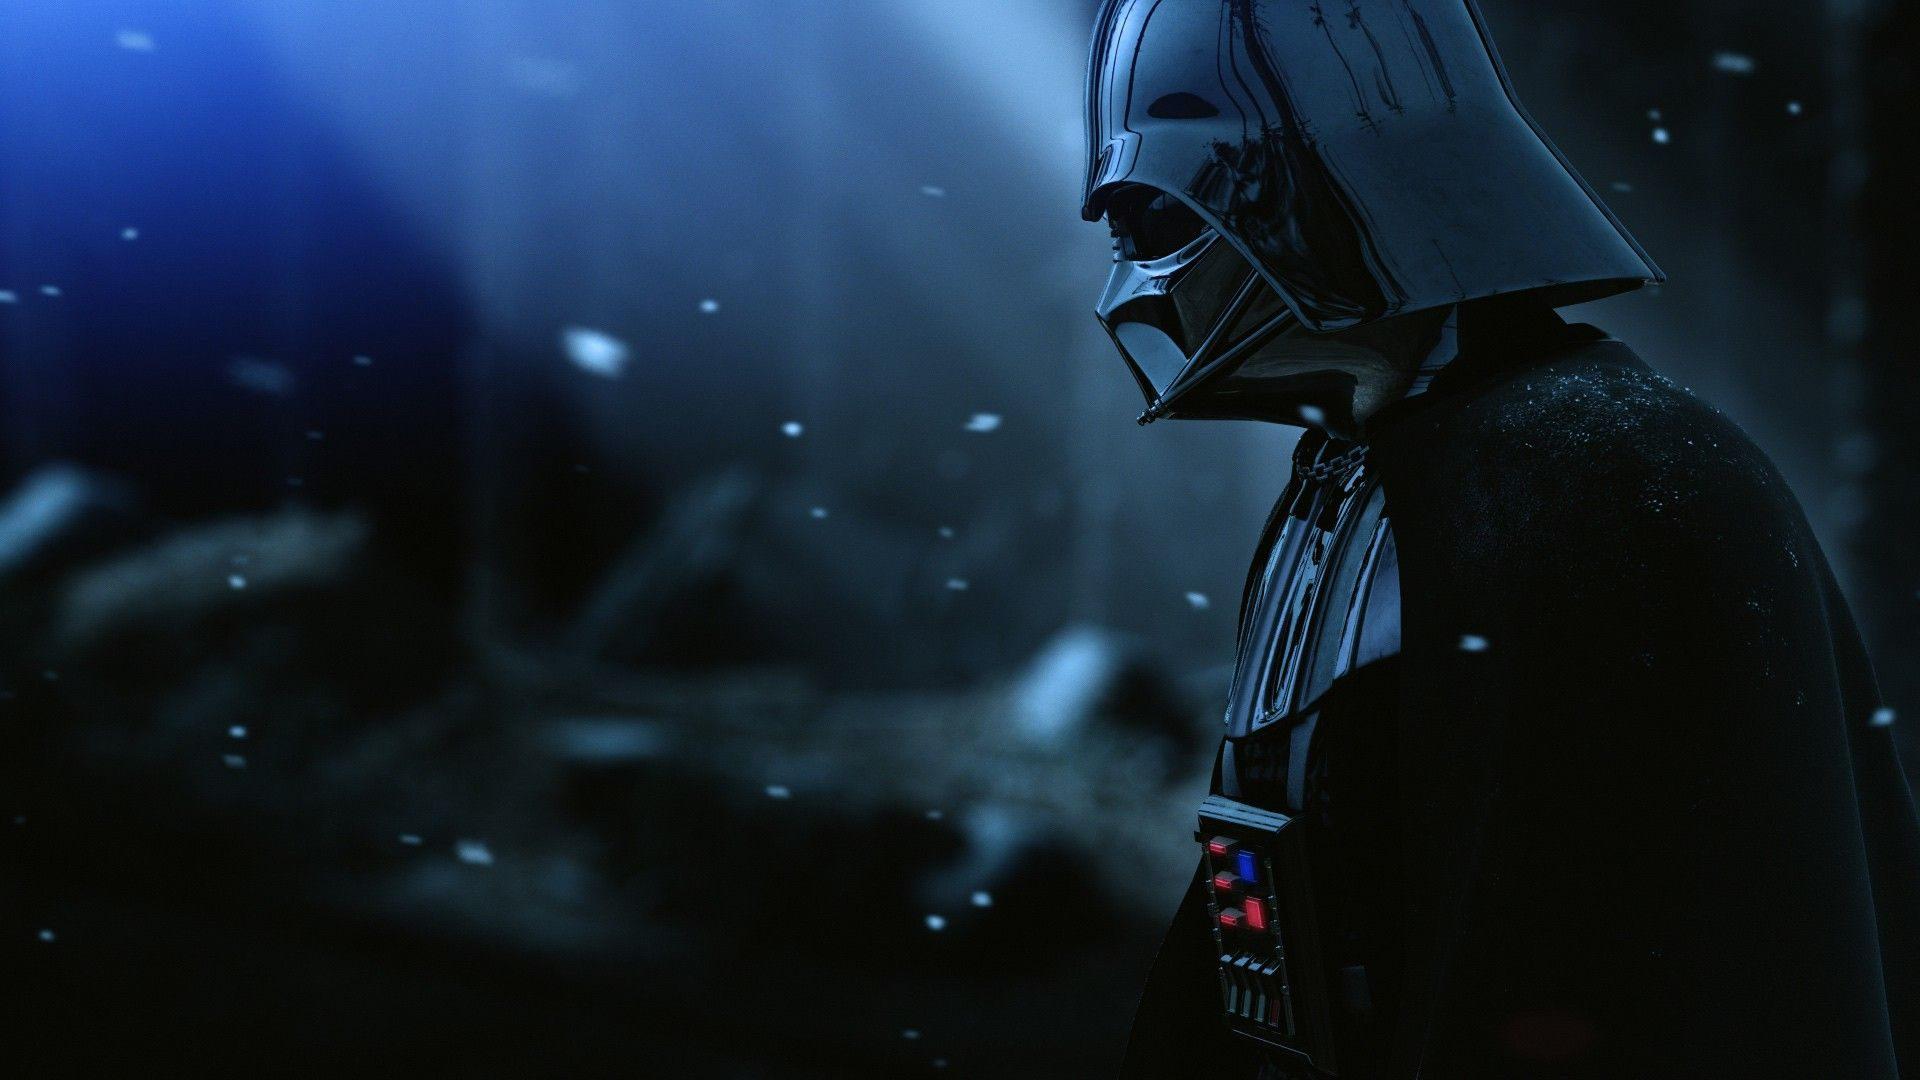 1920x1080 - 1920x1080 HD Wallpapers Star Wars 33